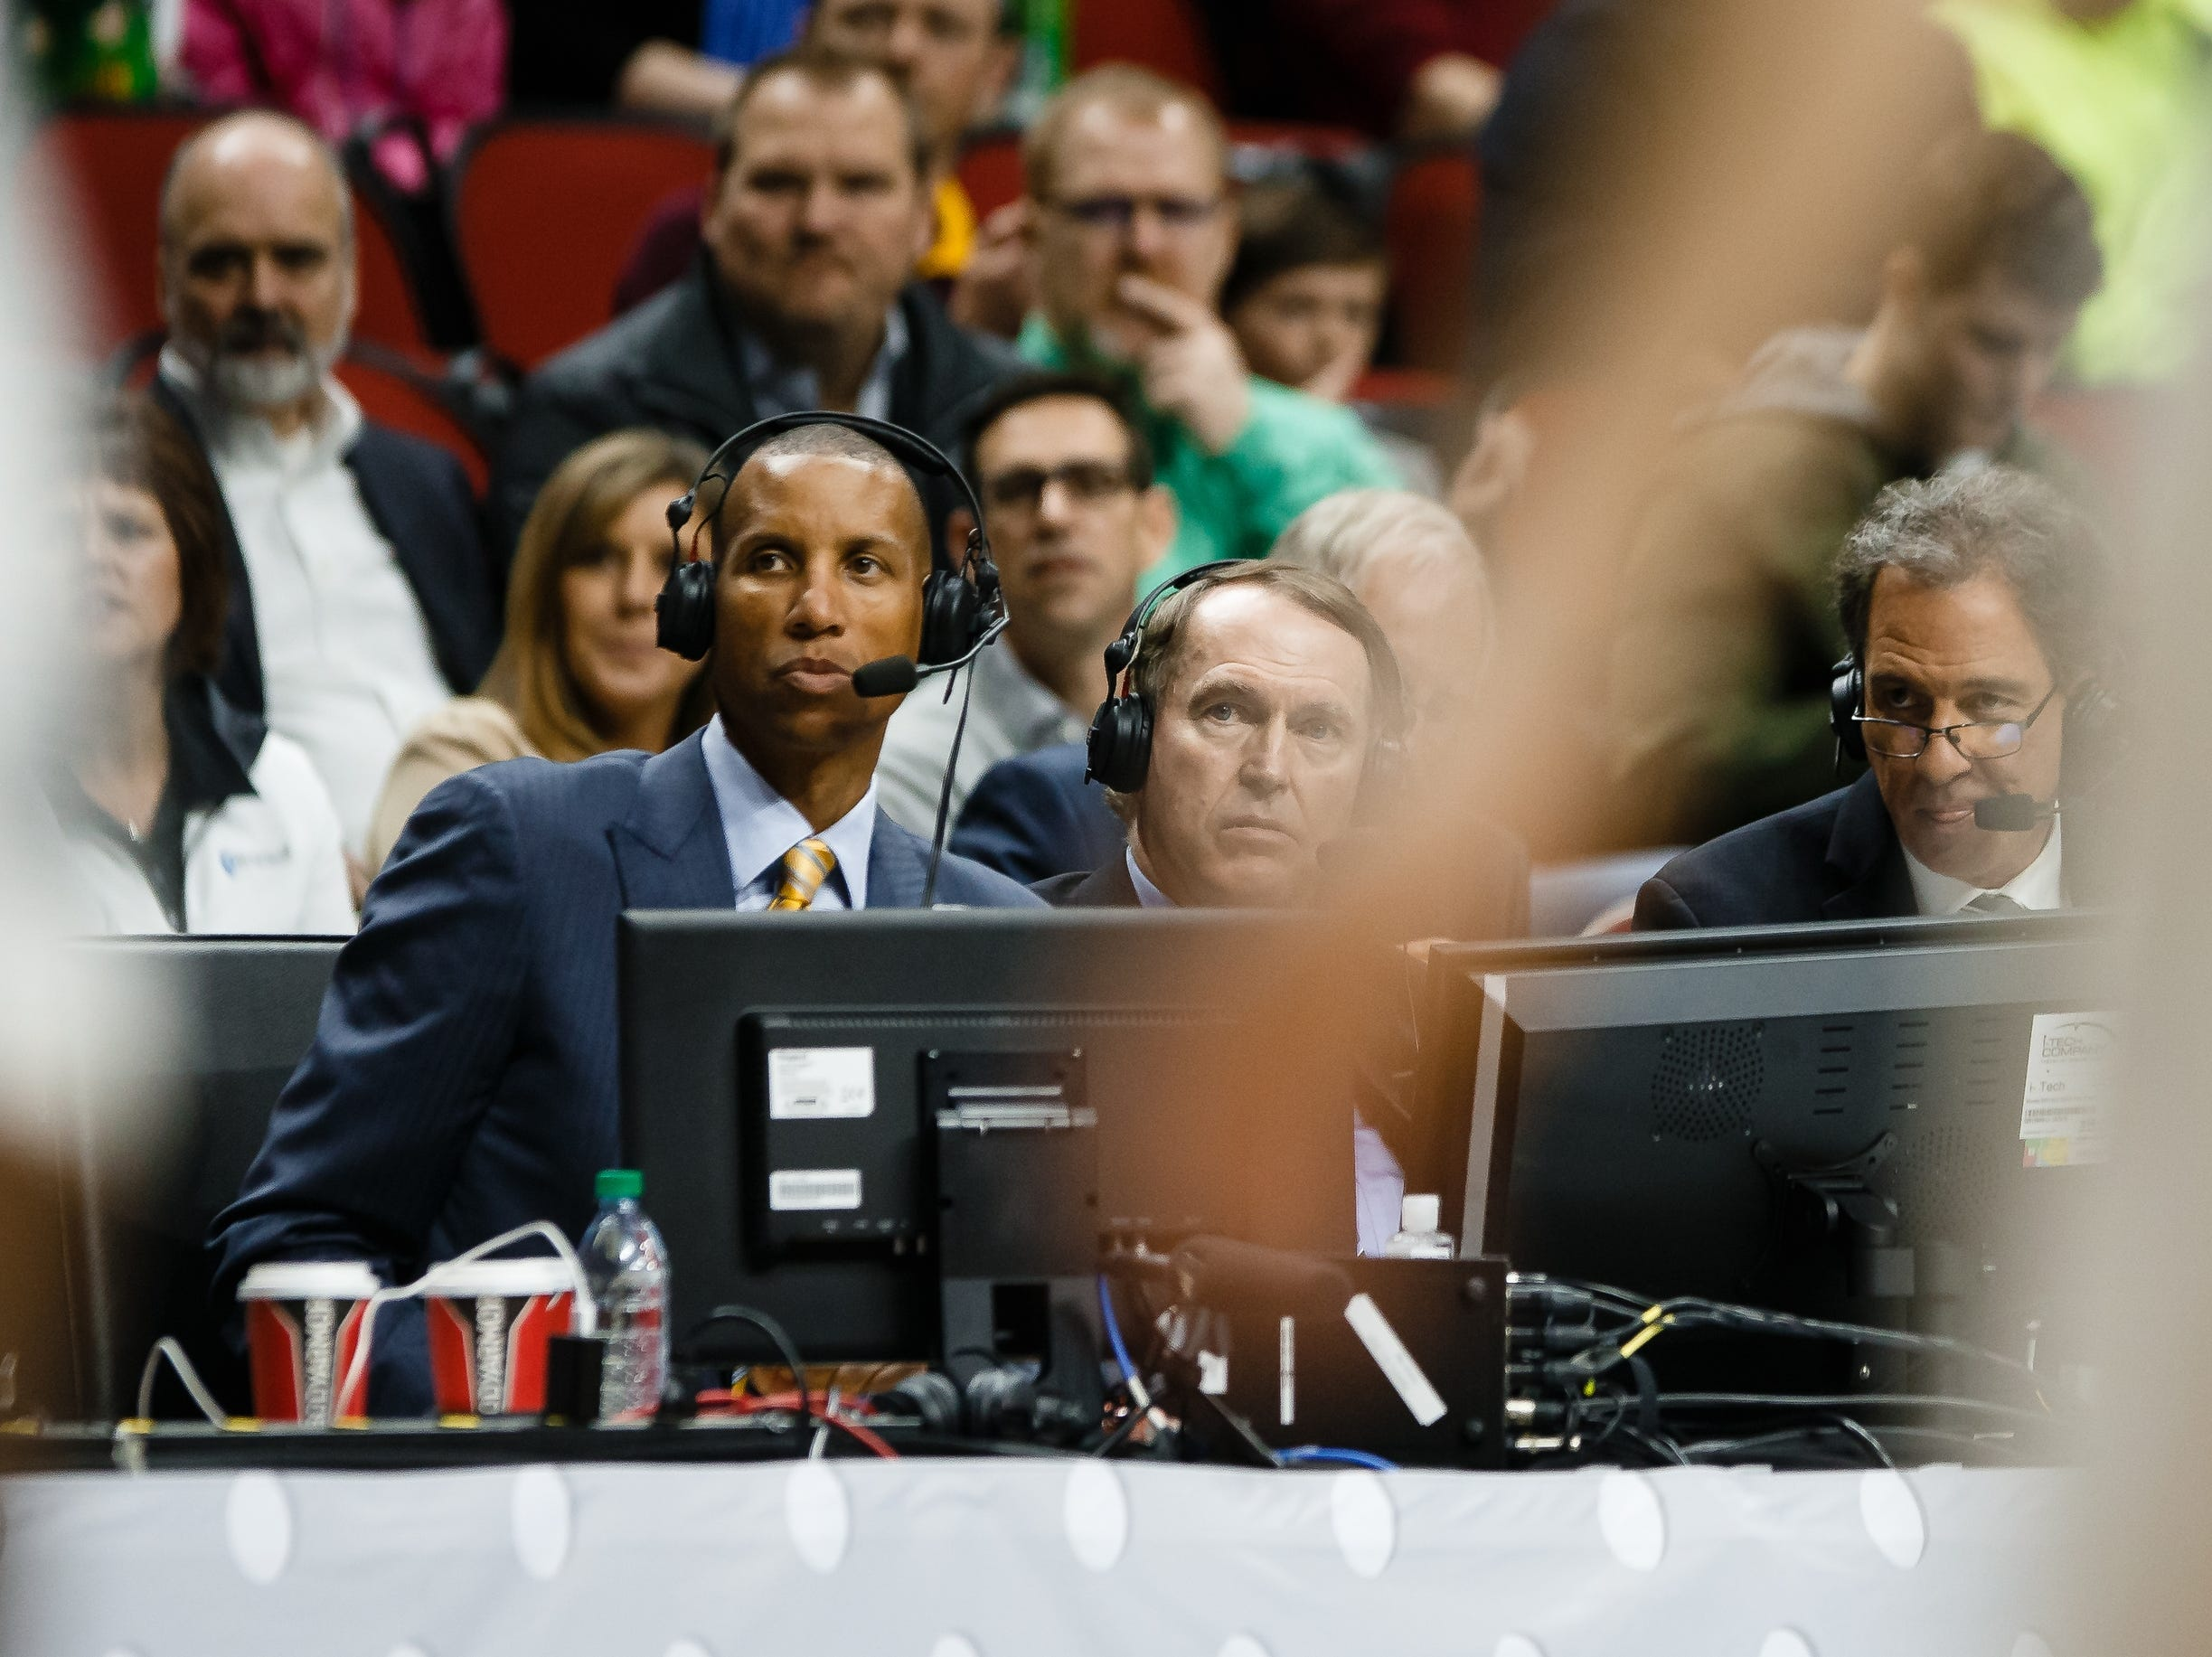 The broadcast team of Reggie Miller, left, Dan Bonner, center, and Kevin Harlan, right, during the NCAA Division I Men's Basketball Championship First Round game on Thursday, March 21, 2019, in Des Moines. Minnesota takes a 38-33 lead into halftime.